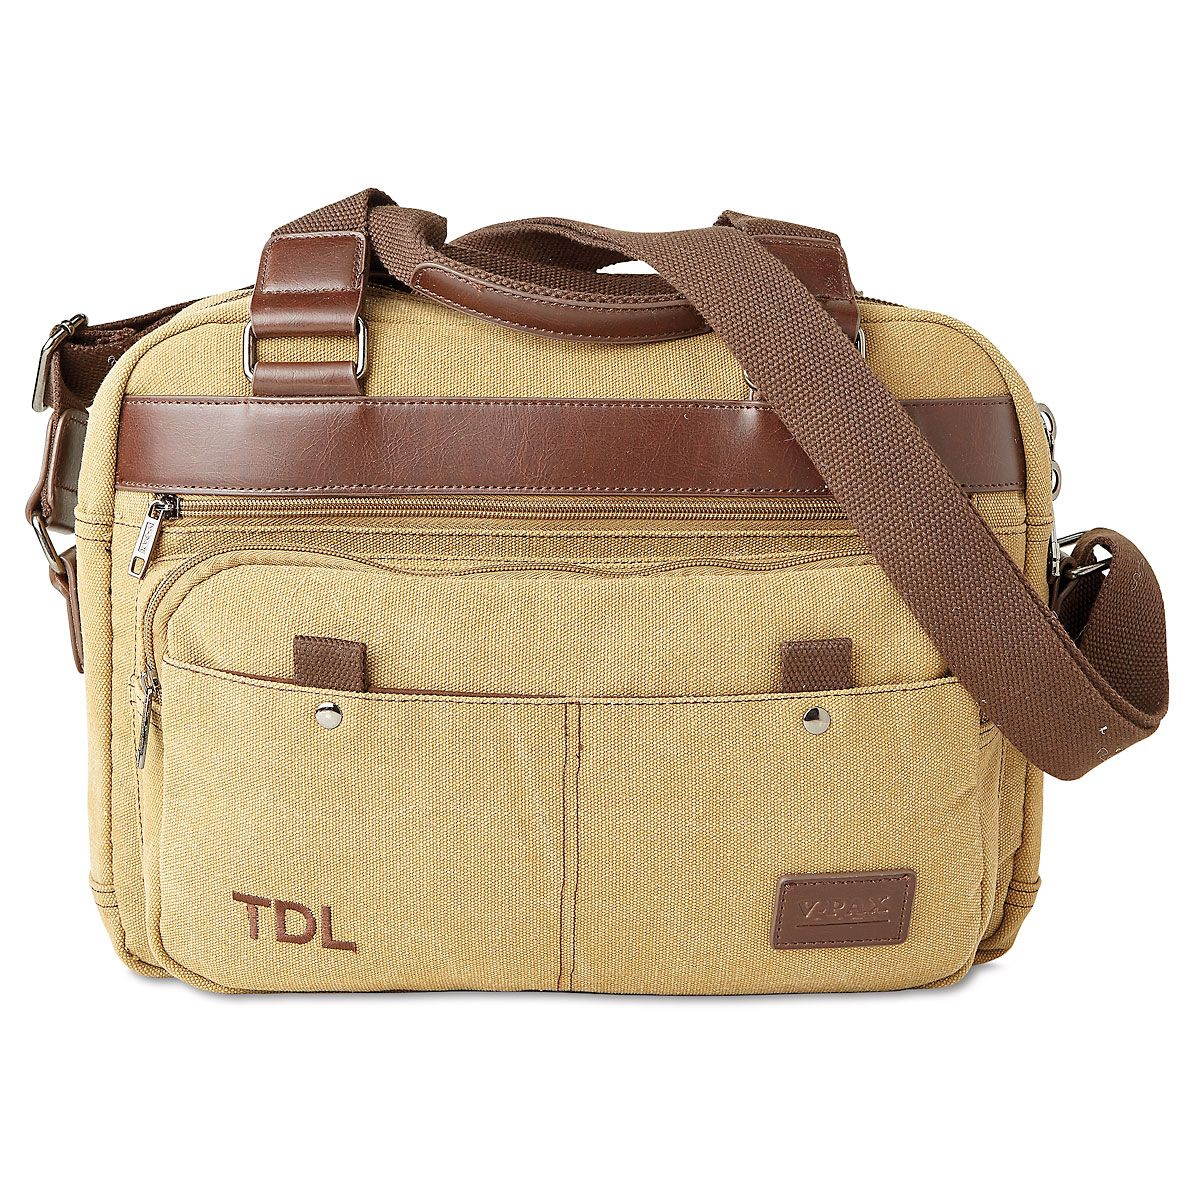 Personalized Laptop Tote